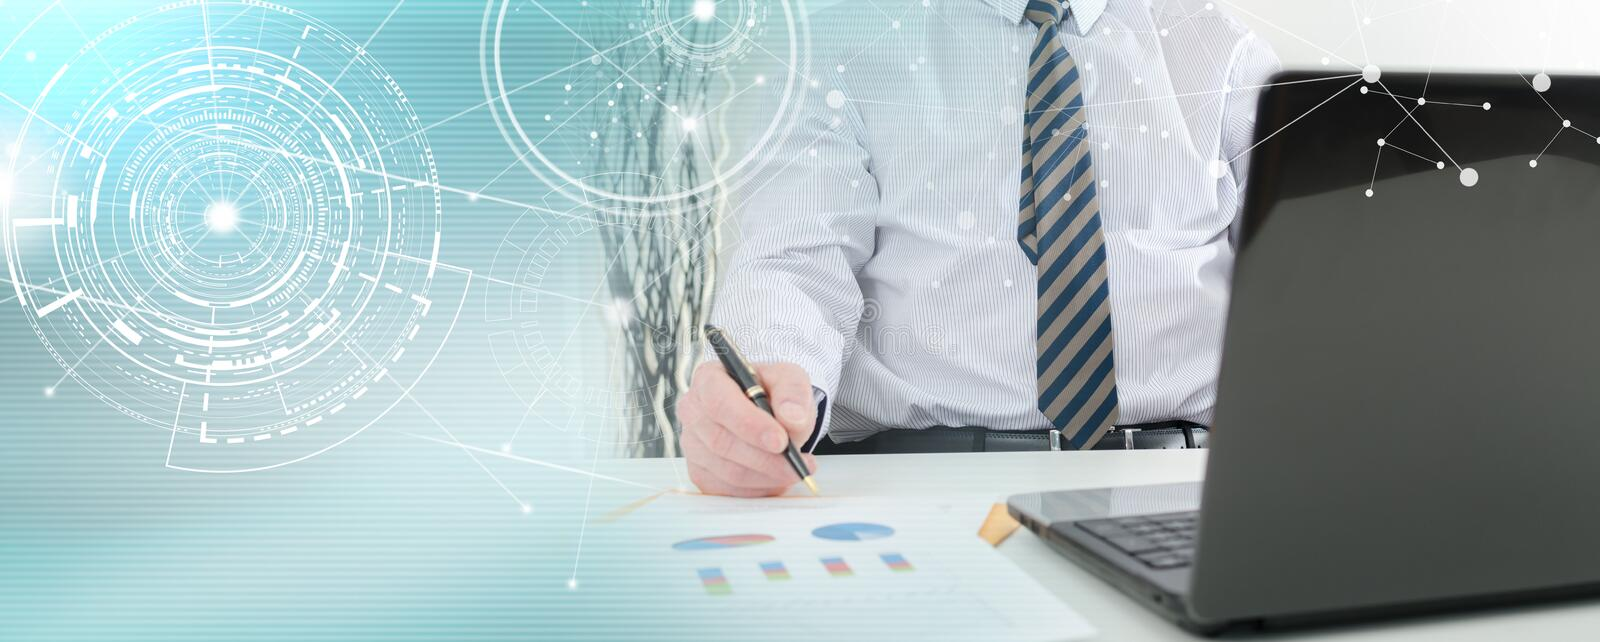 Businessman working on financial graphs; multiple exposure royalty free stock image